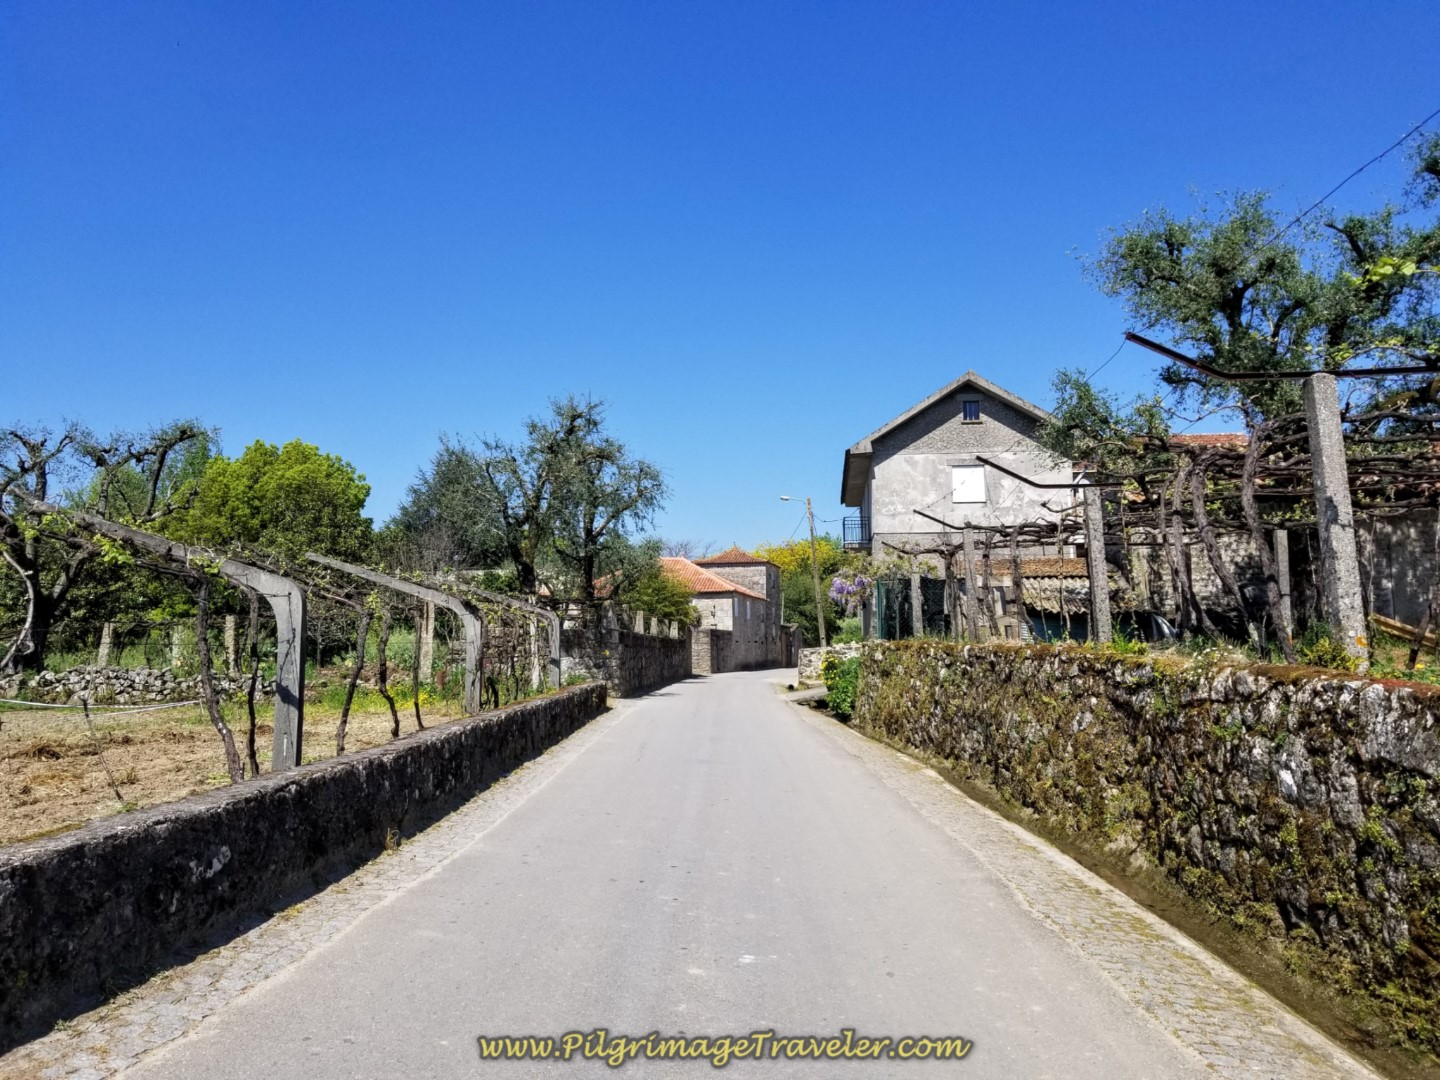 Continuing on the Rua do Caminho do Santiago on day seventeen on the Central Route of the Portuguese Camino